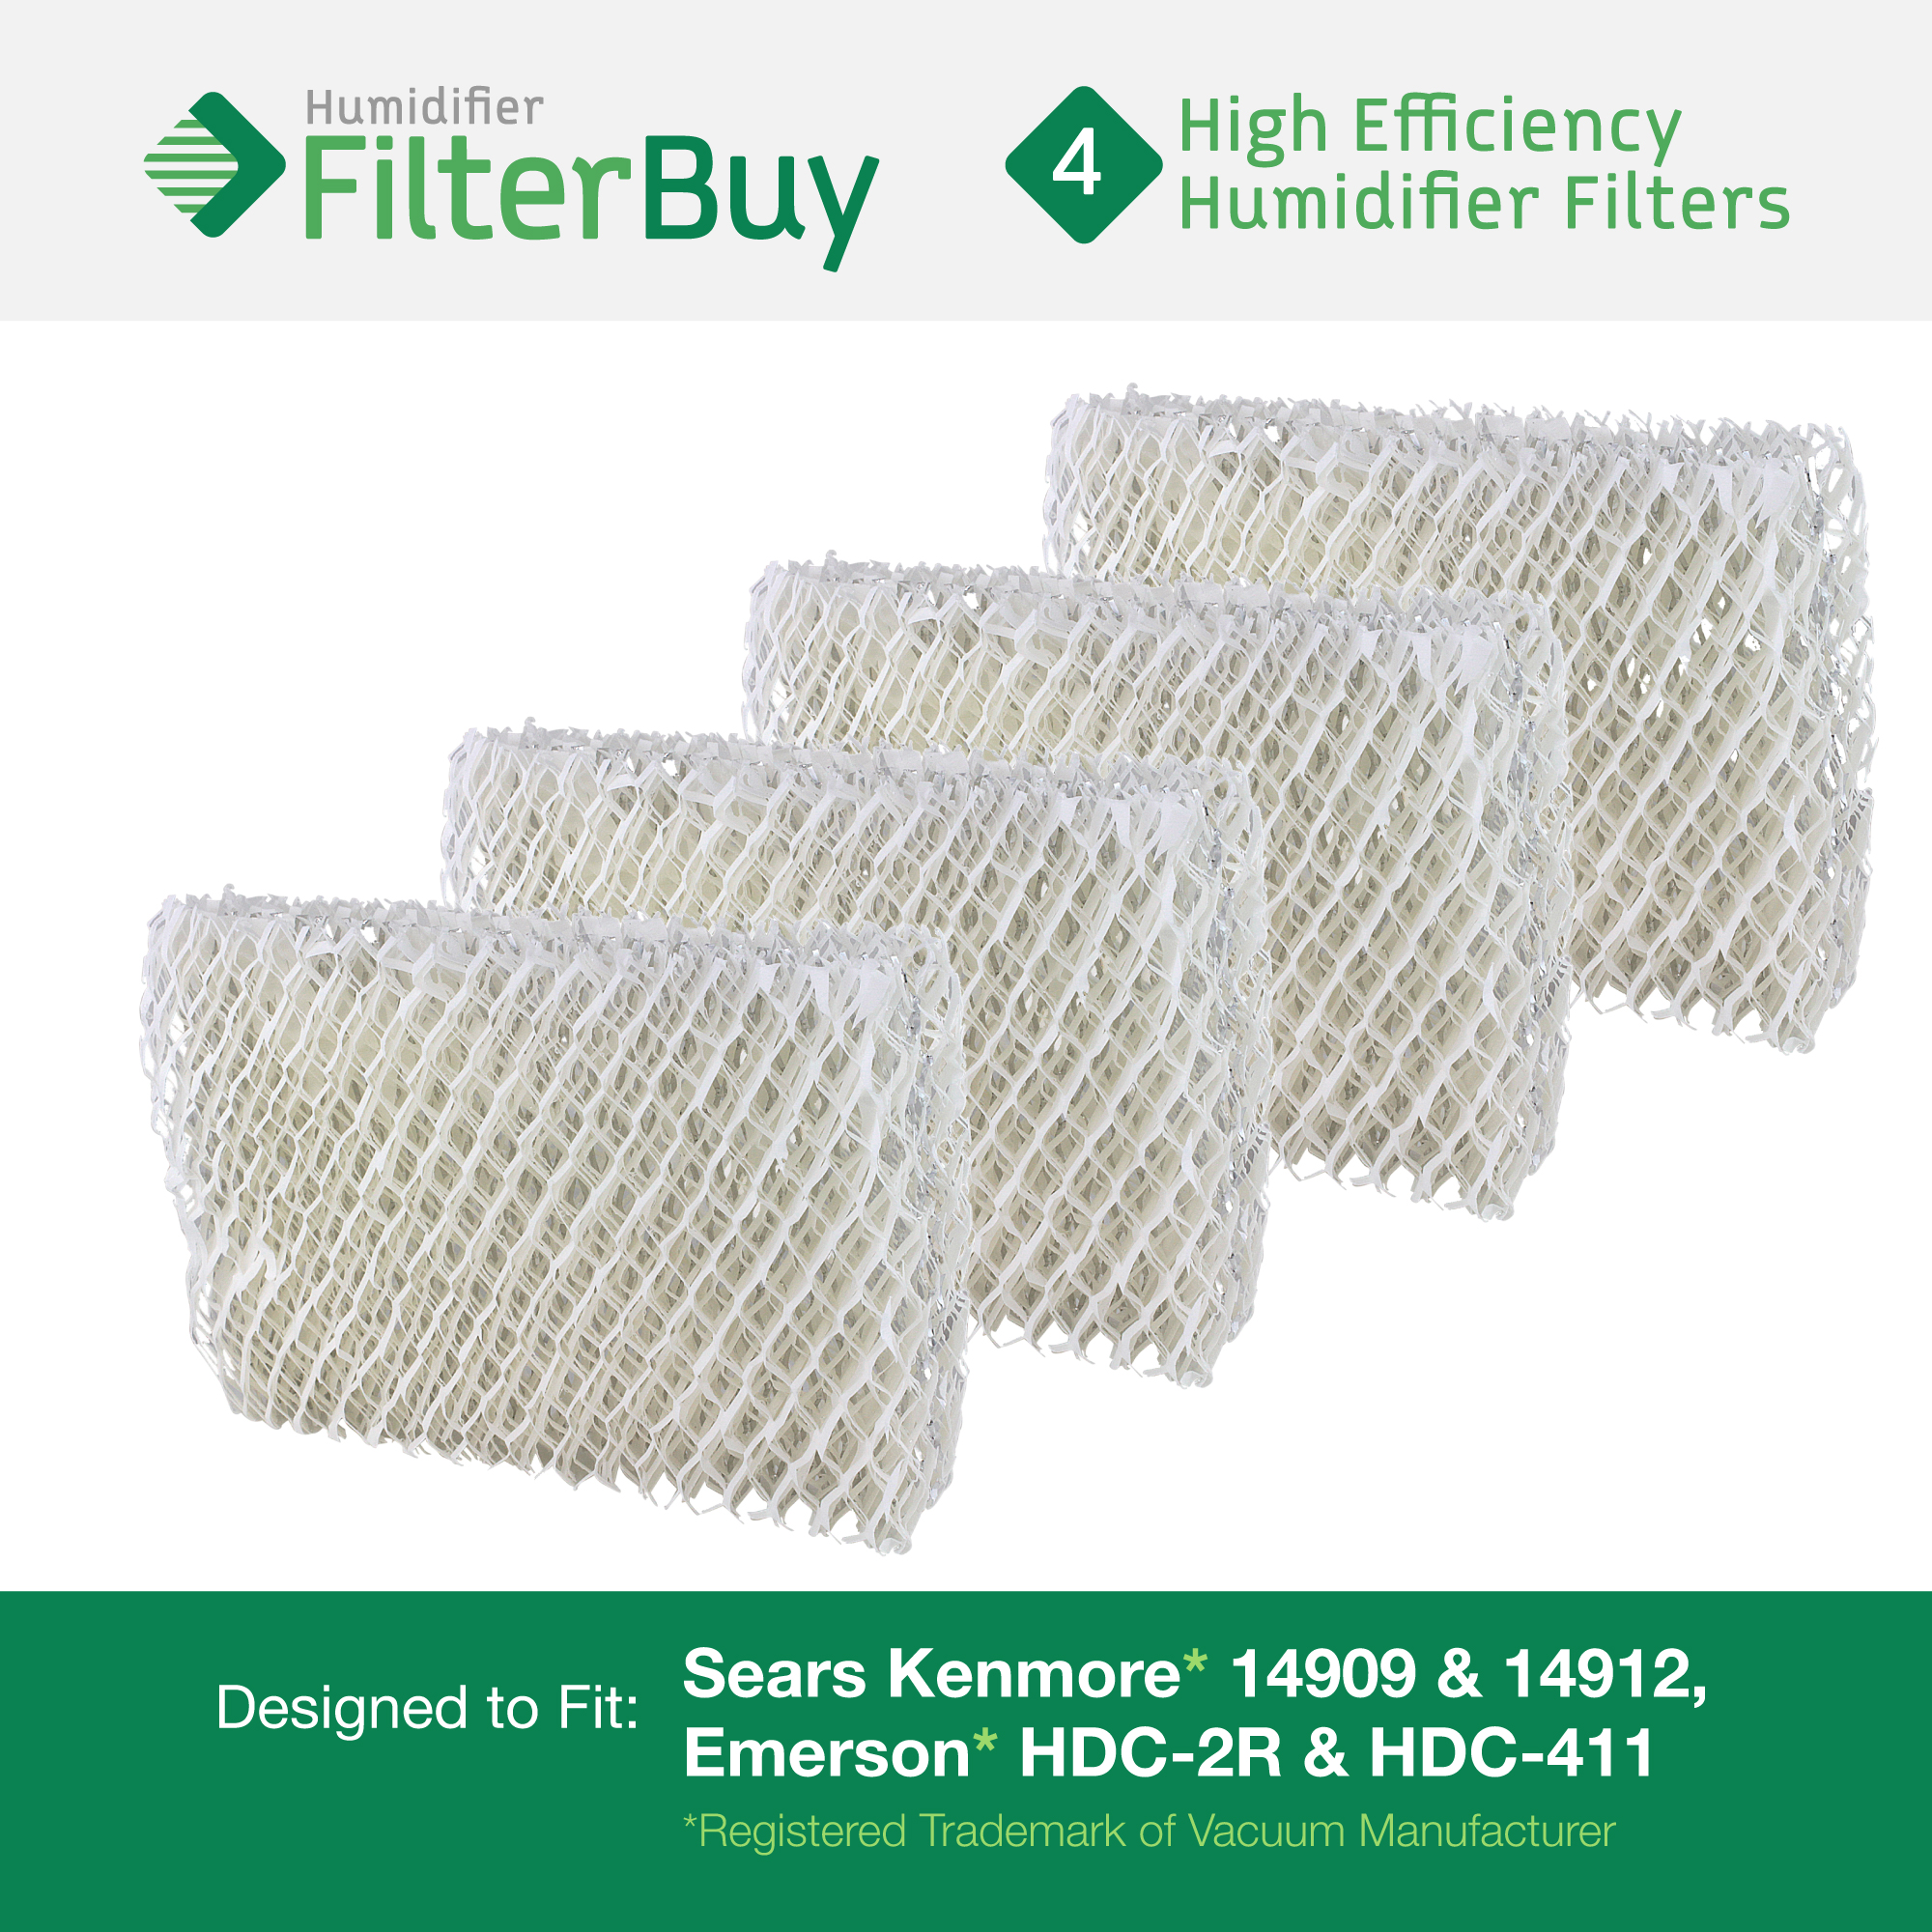 Emerson HDC-2R & HDC-411, Sears Kenmore 14909 & 14912 Humidifier Wick Filter. Designed by FilterBuy. Pack of 4 Filters.